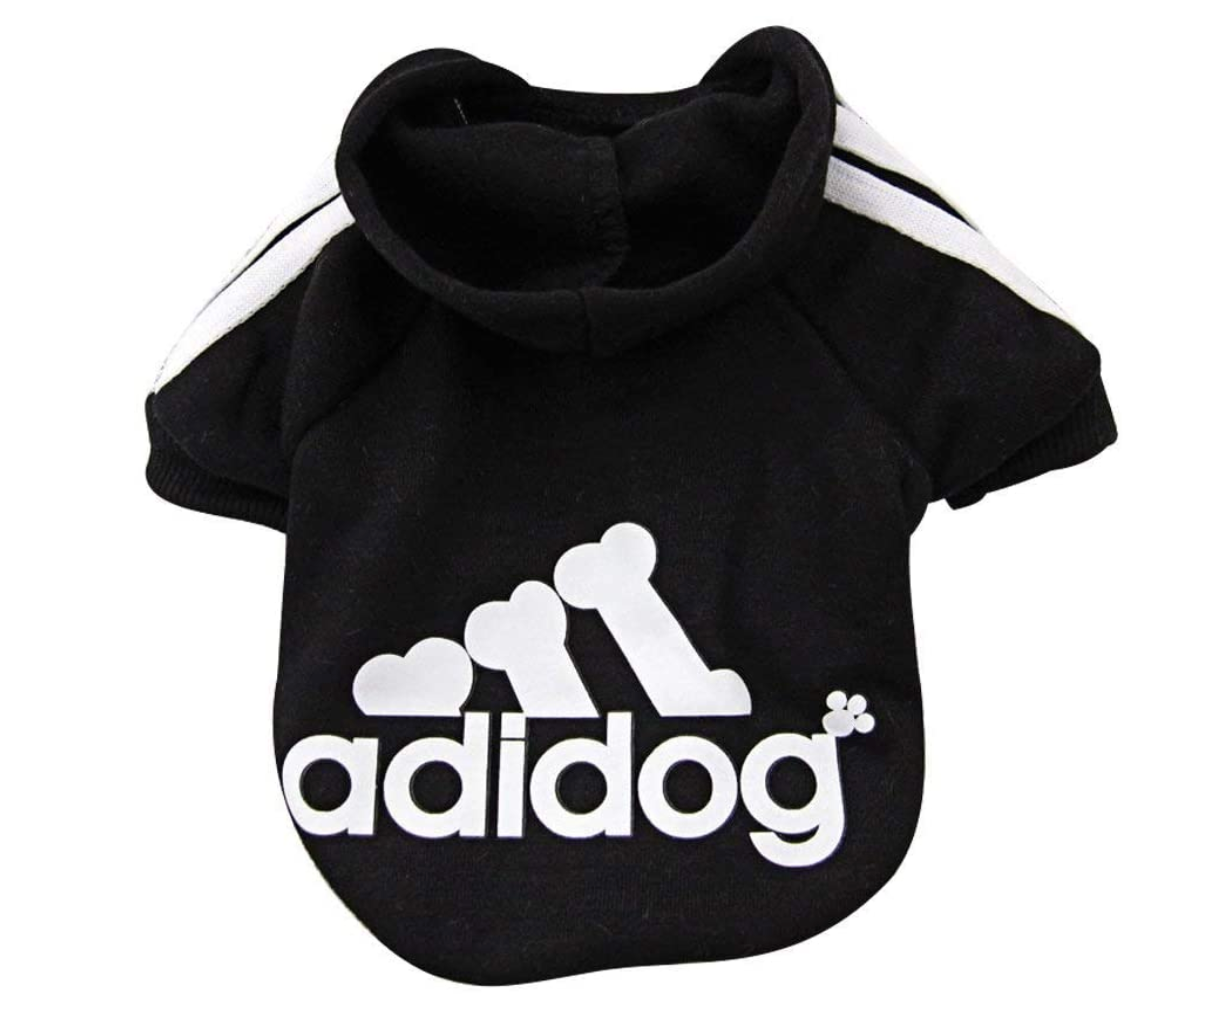 The Basic Adidog - Black